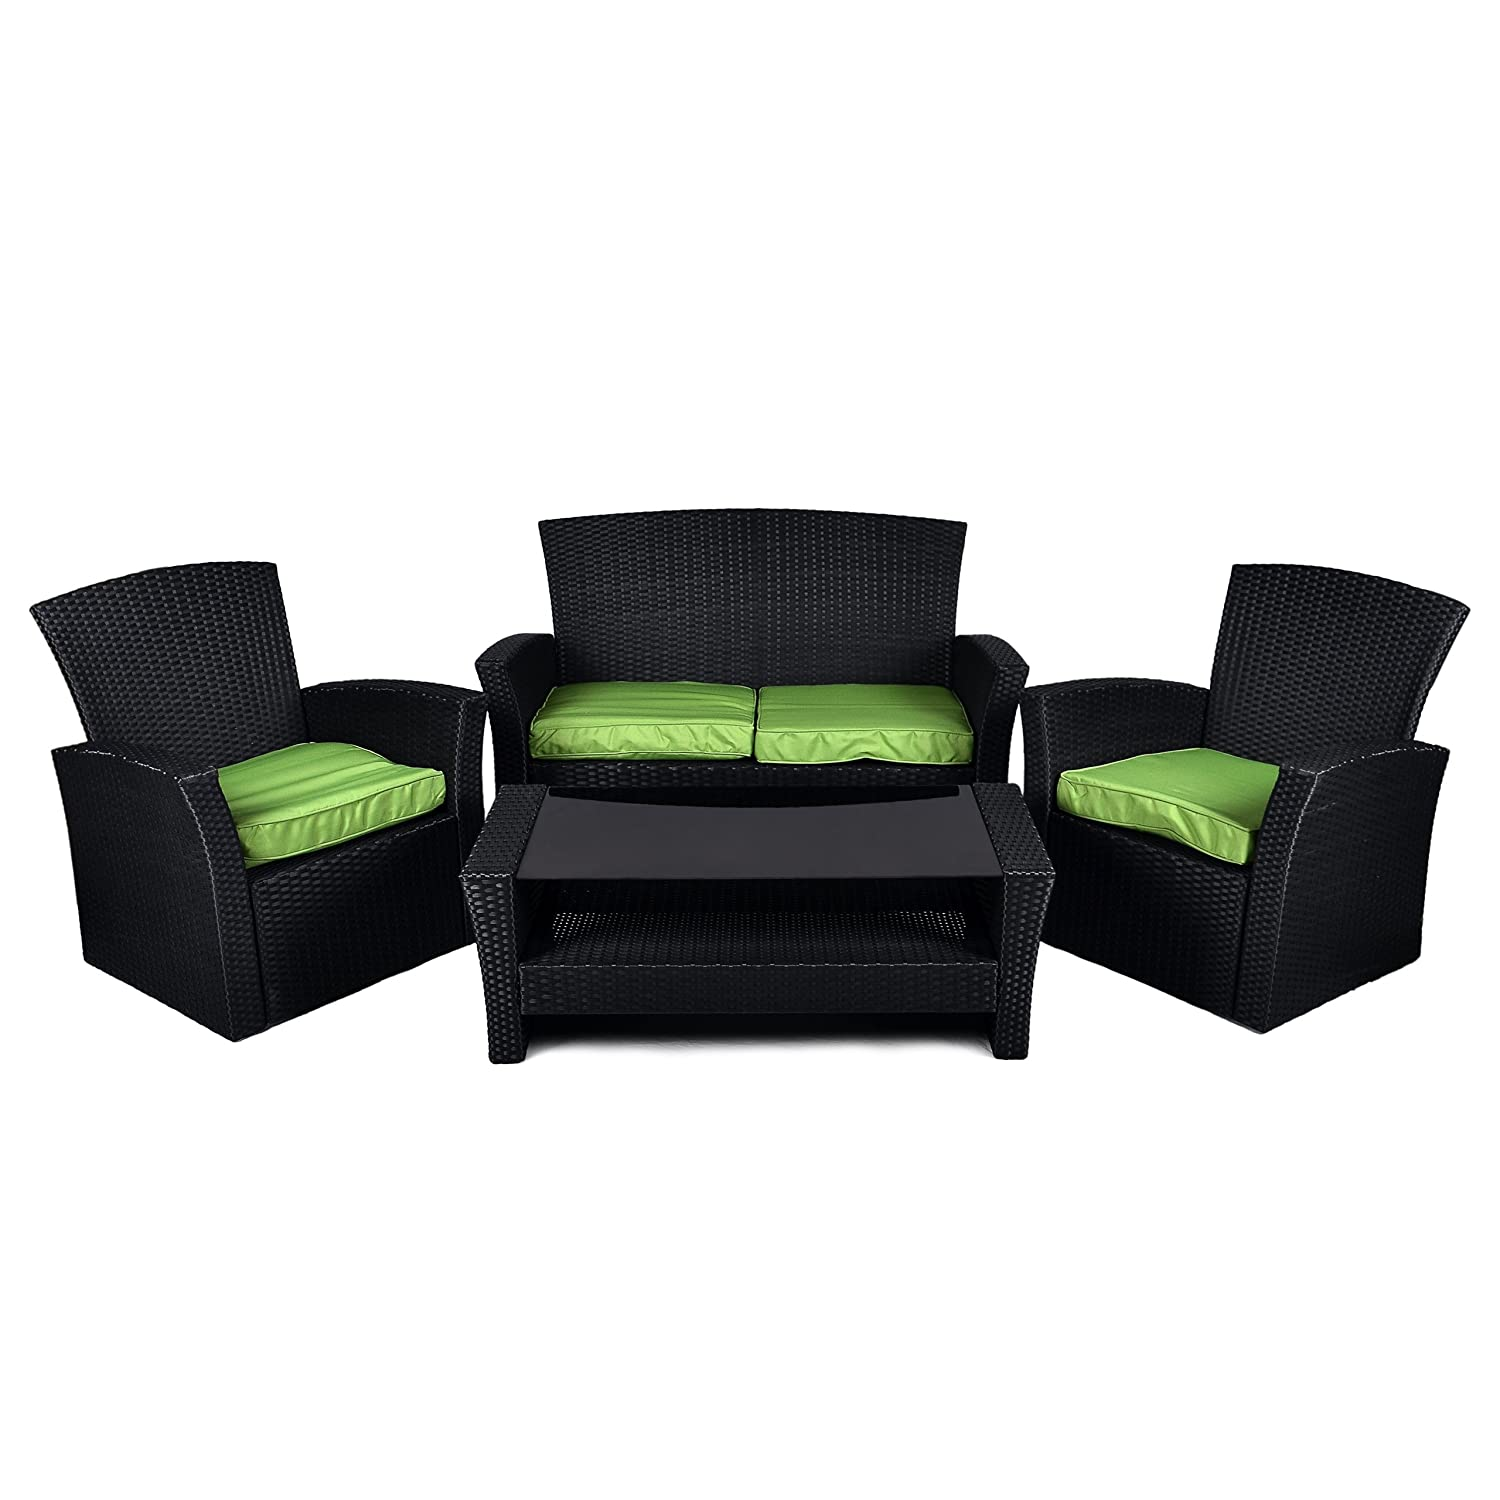 rattan set 4tlg mit glastisch gr n garnitur gartenm bel lounge sitzgruppe m bel g nstig kaufen. Black Bedroom Furniture Sets. Home Design Ideas